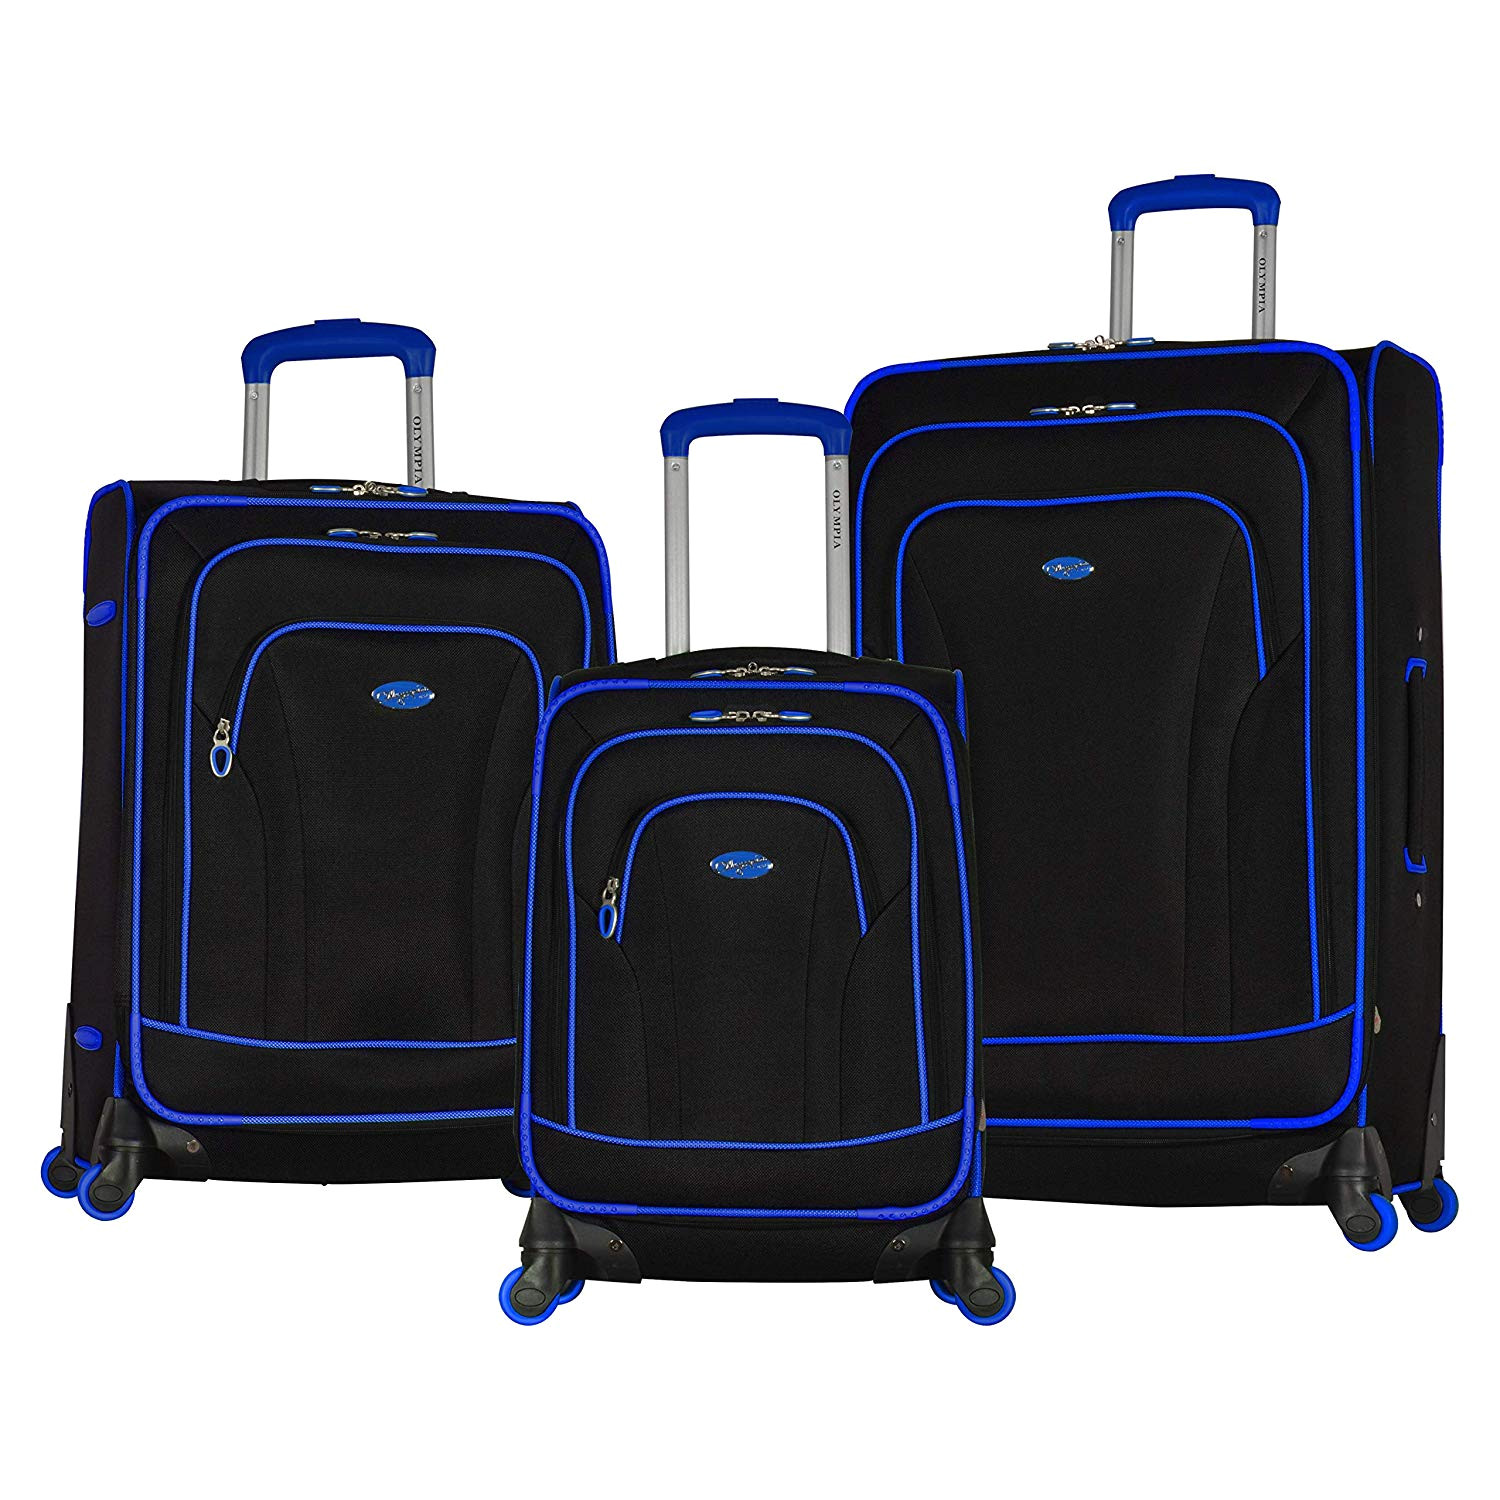 amazon com olympia santa fe 3 piece softside spinner luggage set 21 25 29 black blue luggage sets